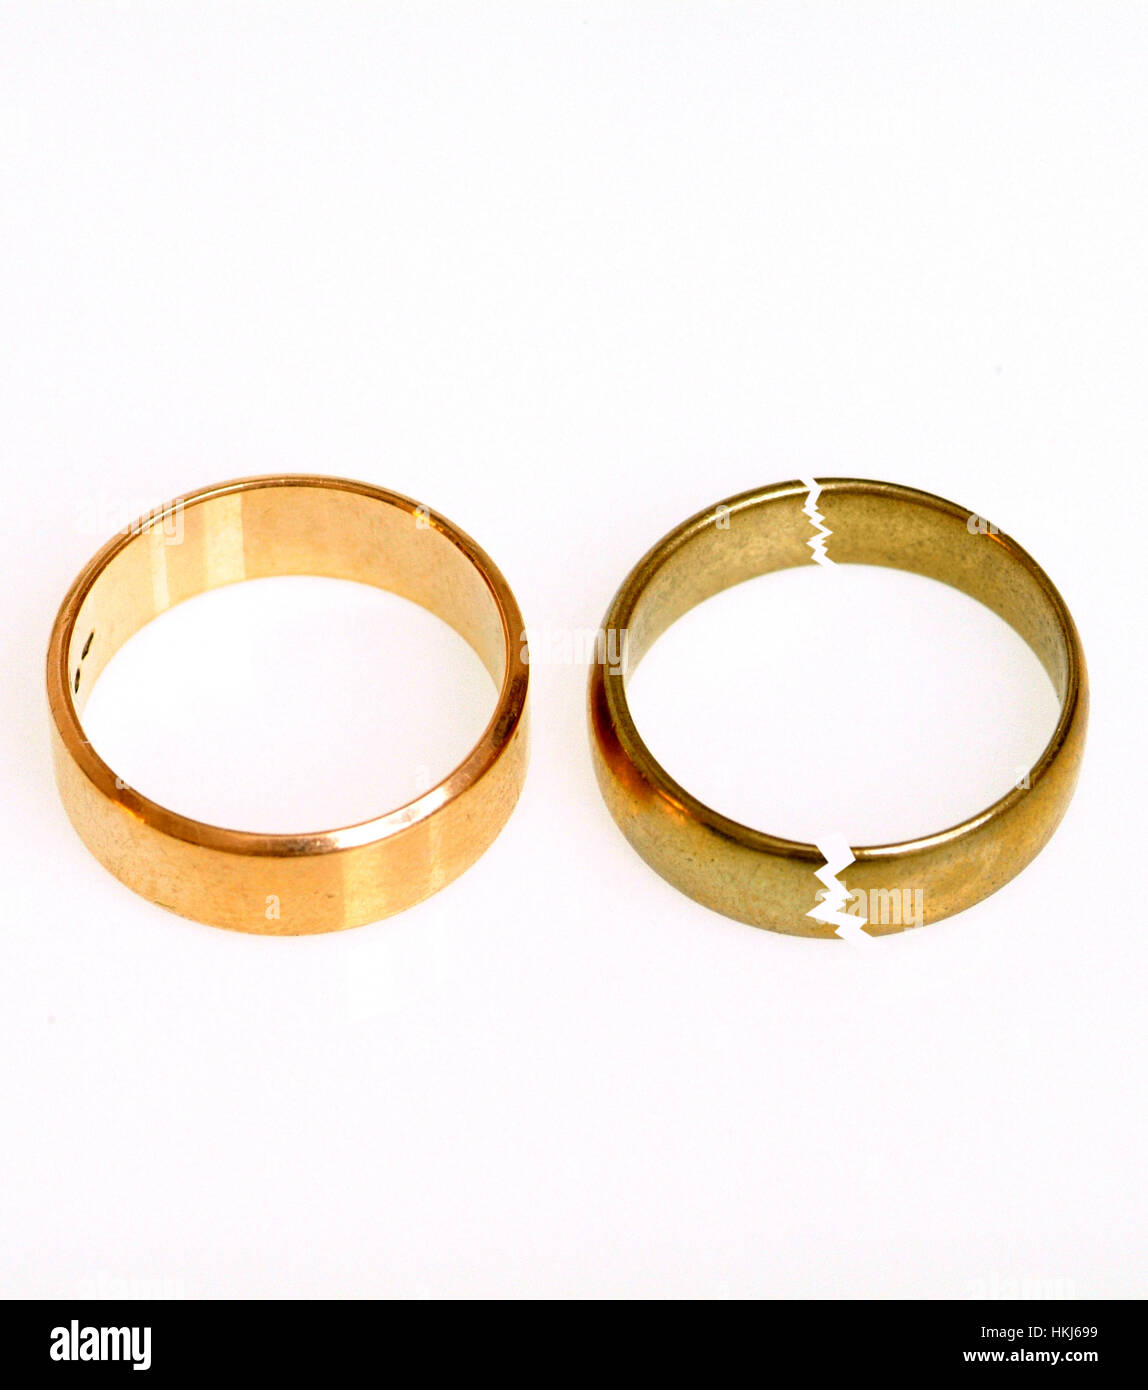 depositphotos rings photo wedding stock gold broken